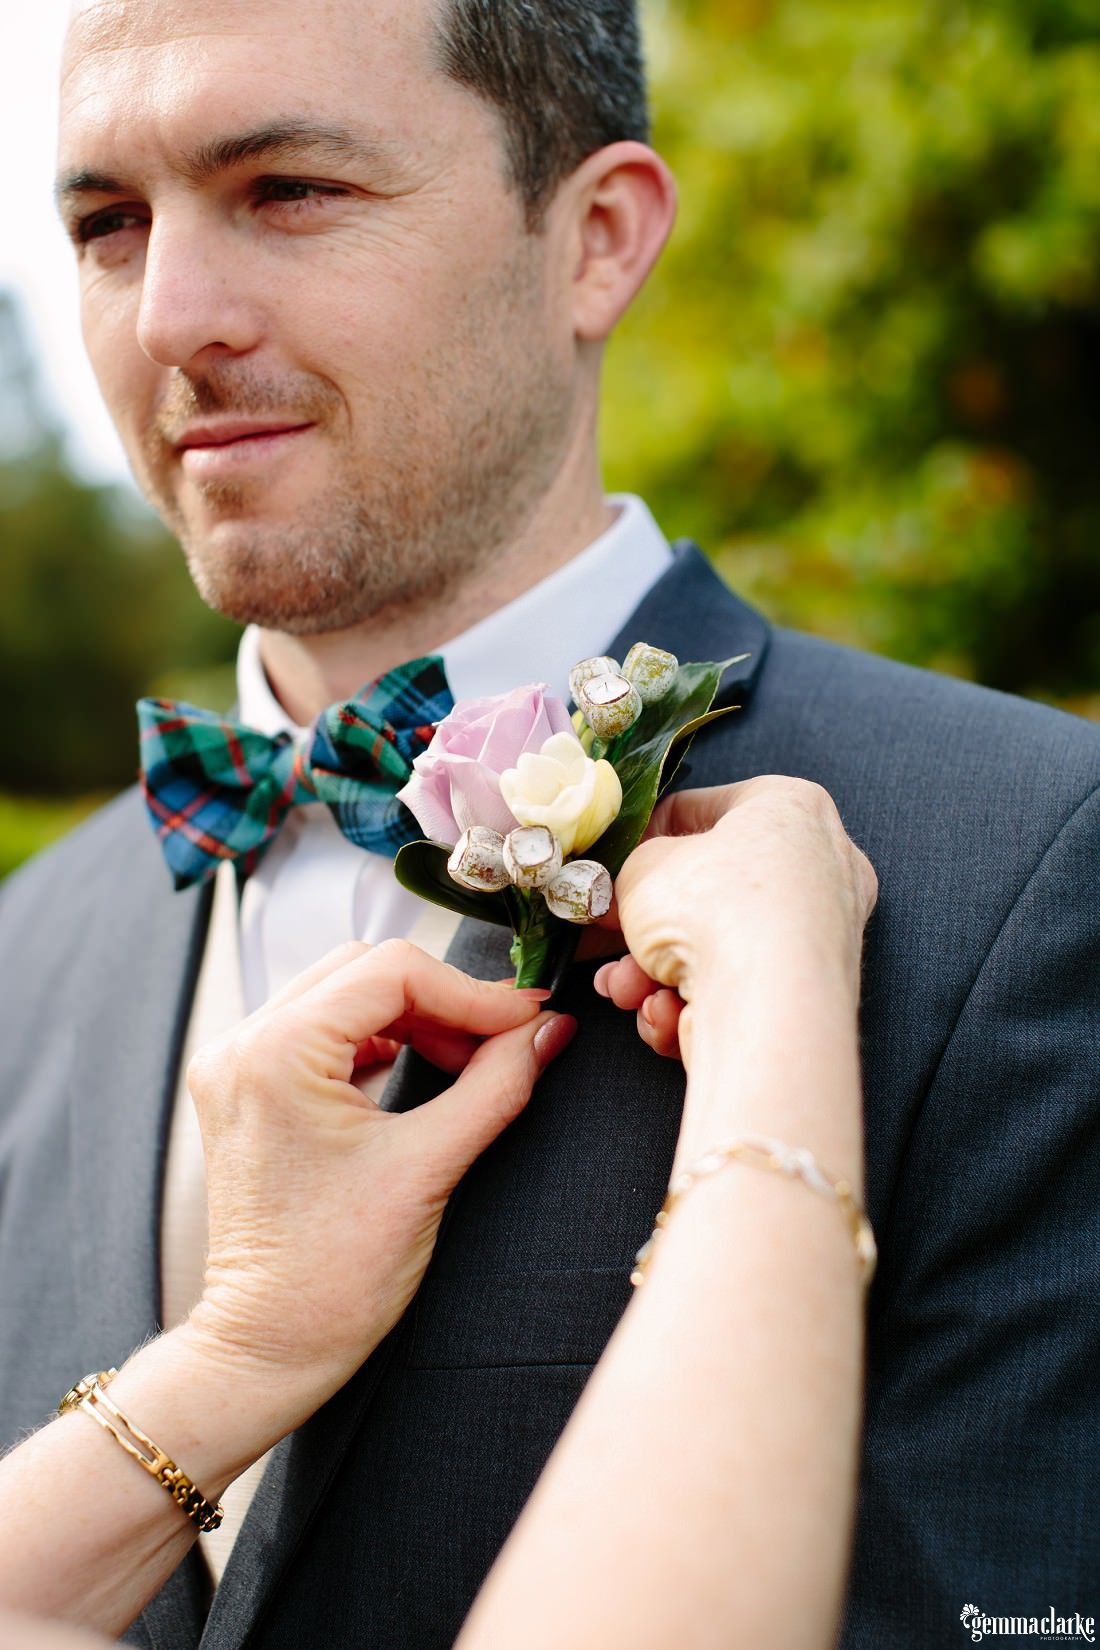 A closeup of a groom having his floral buttonhole adjusted